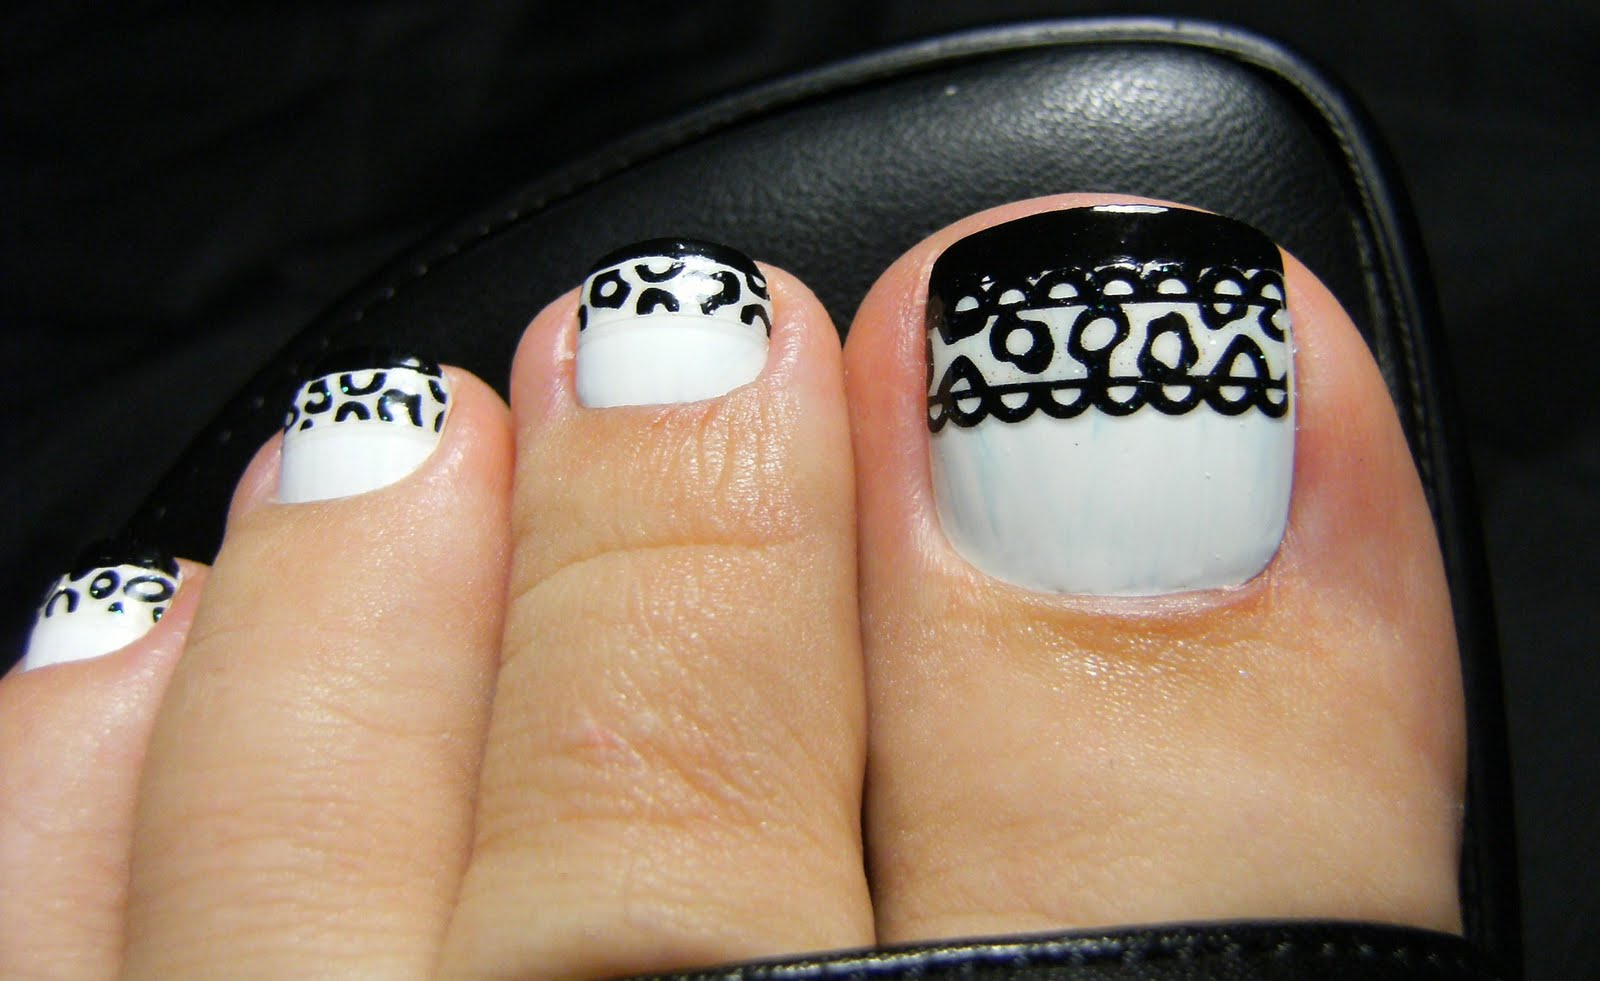 What do horizontal white lines on toenails indicate? | ChaCha